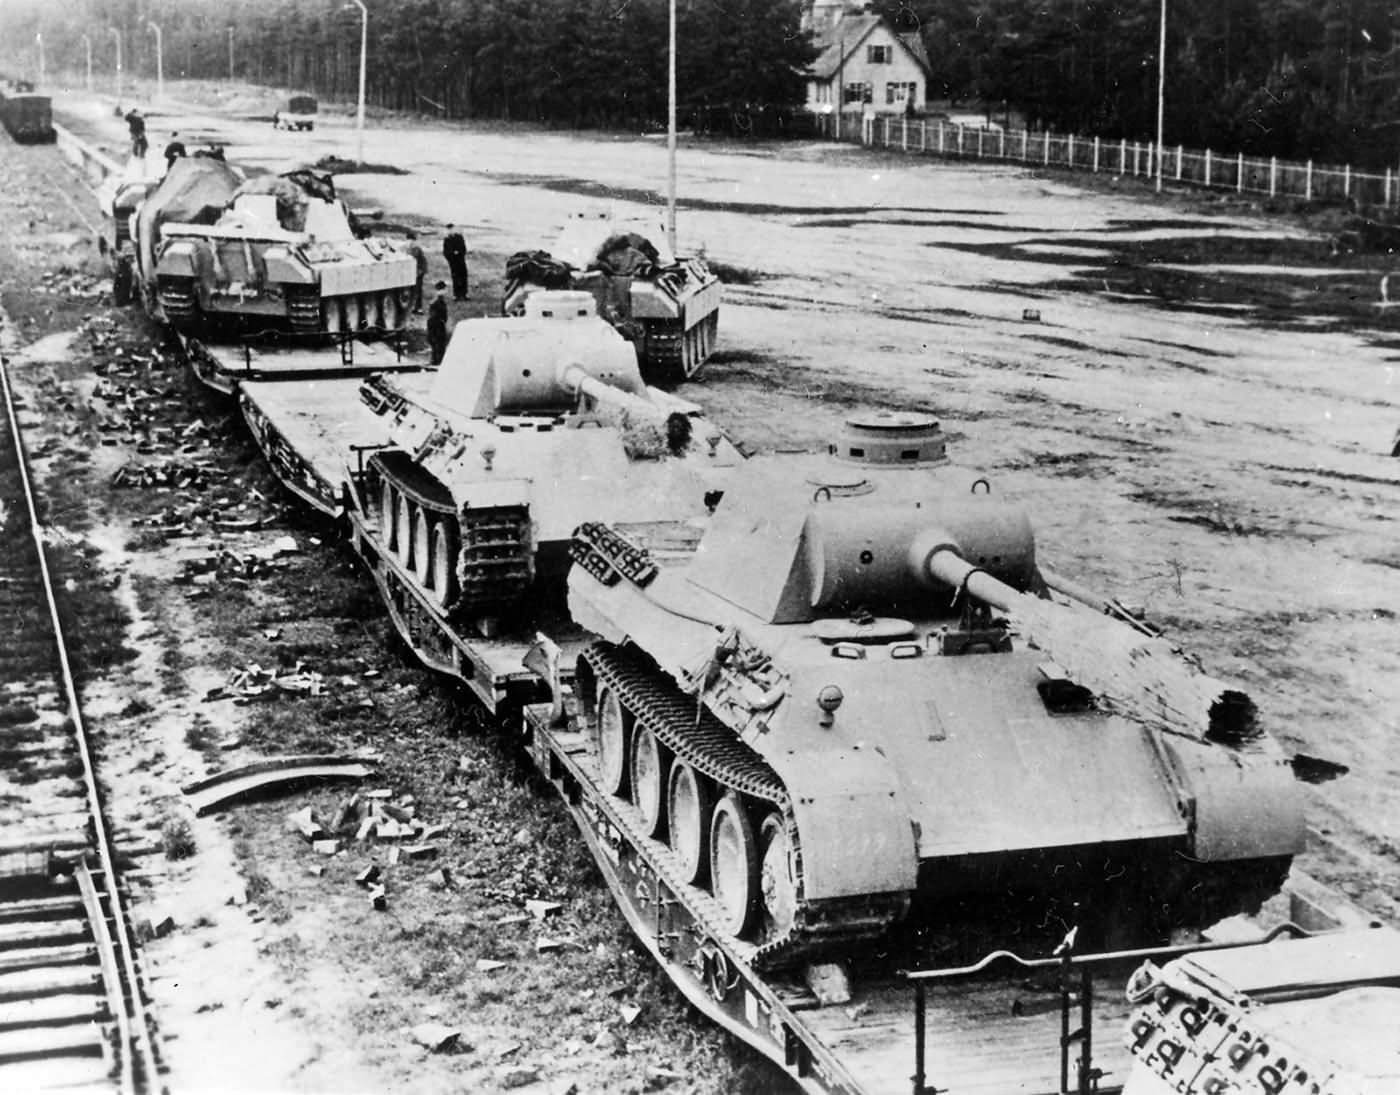 Tiger (Panzer VI) or Panther (Panzer V)? Which would you rather ...